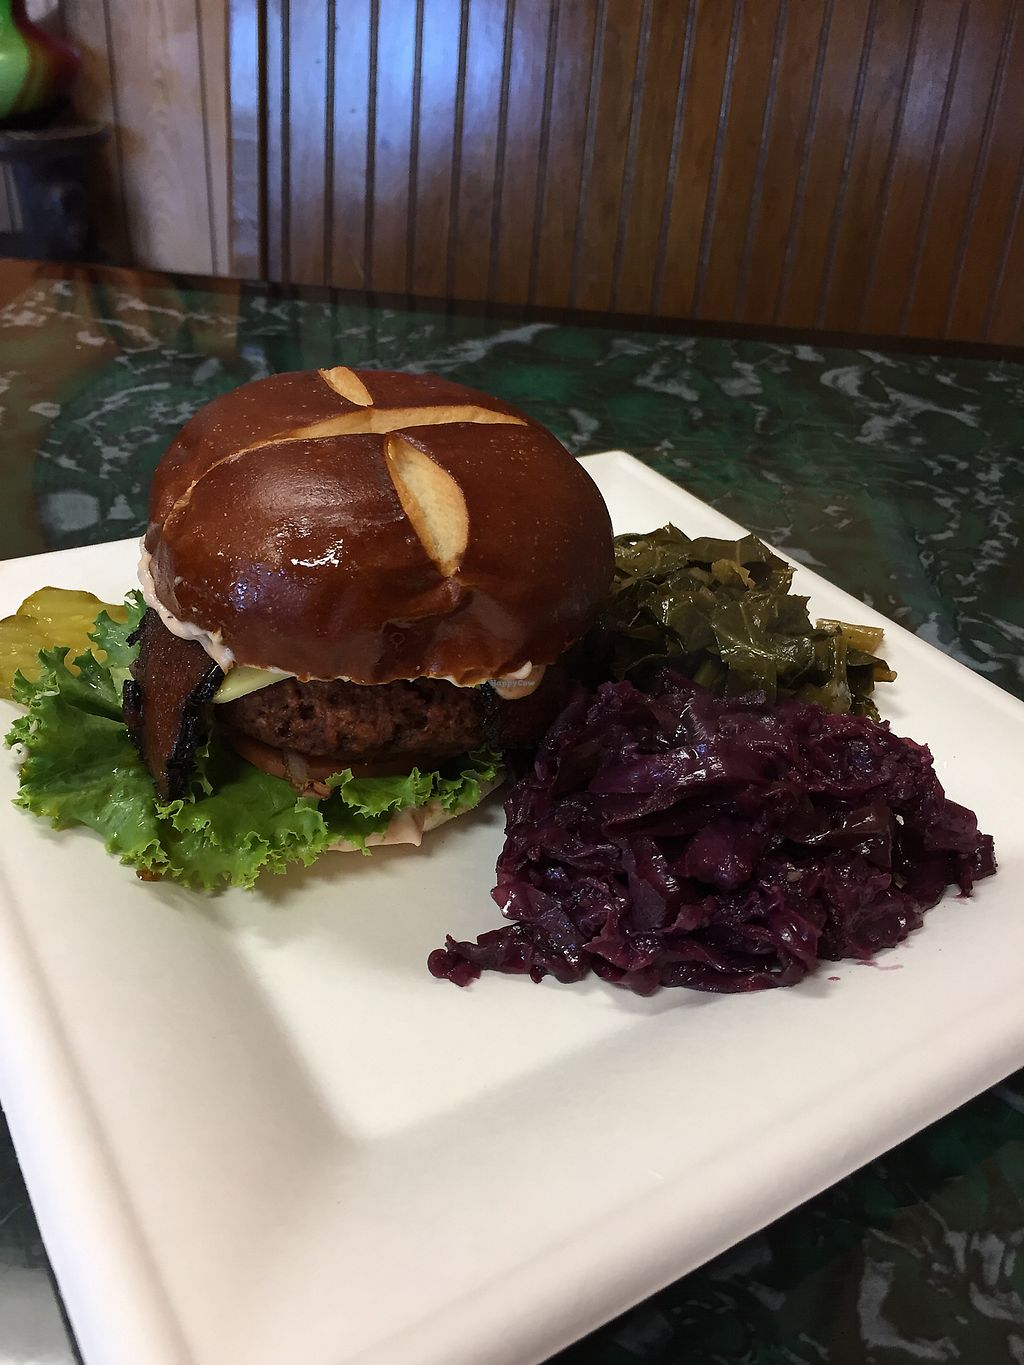 """Photo of Lamb's Bread Vegan Cafe  by <a href=""""/members/profile/sopranonerd"""">sopranonerd</a> <br/>""""bacon cheese burger"""" with veg sides <br/> August 1, 2017  - <a href='/contact/abuse/image/20304/287791'>Report</a>"""